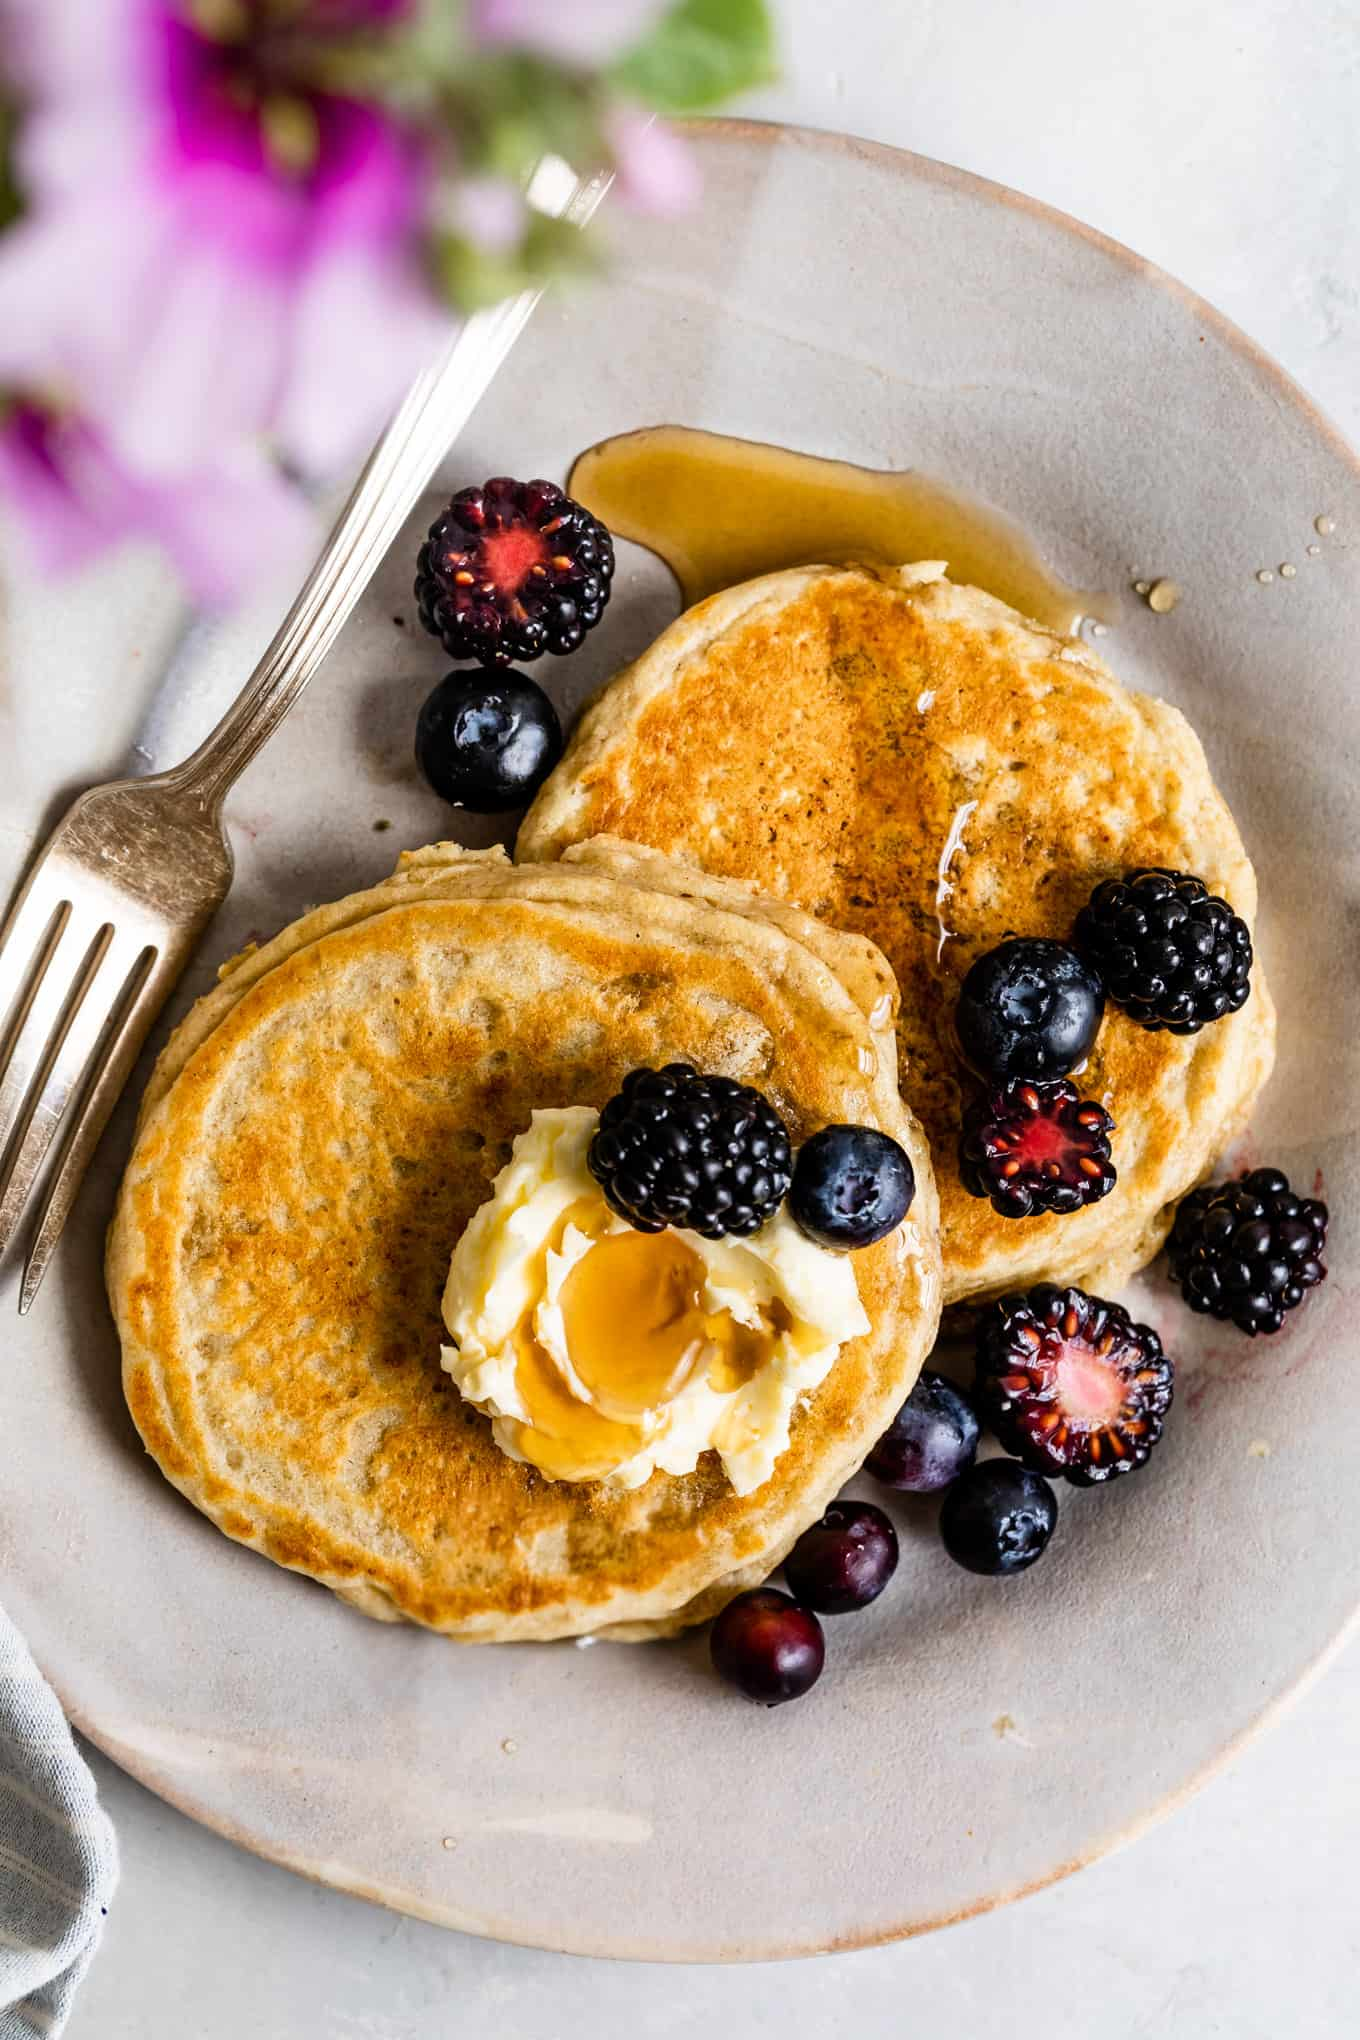 Gluten-free blueberry pancakes with syrup